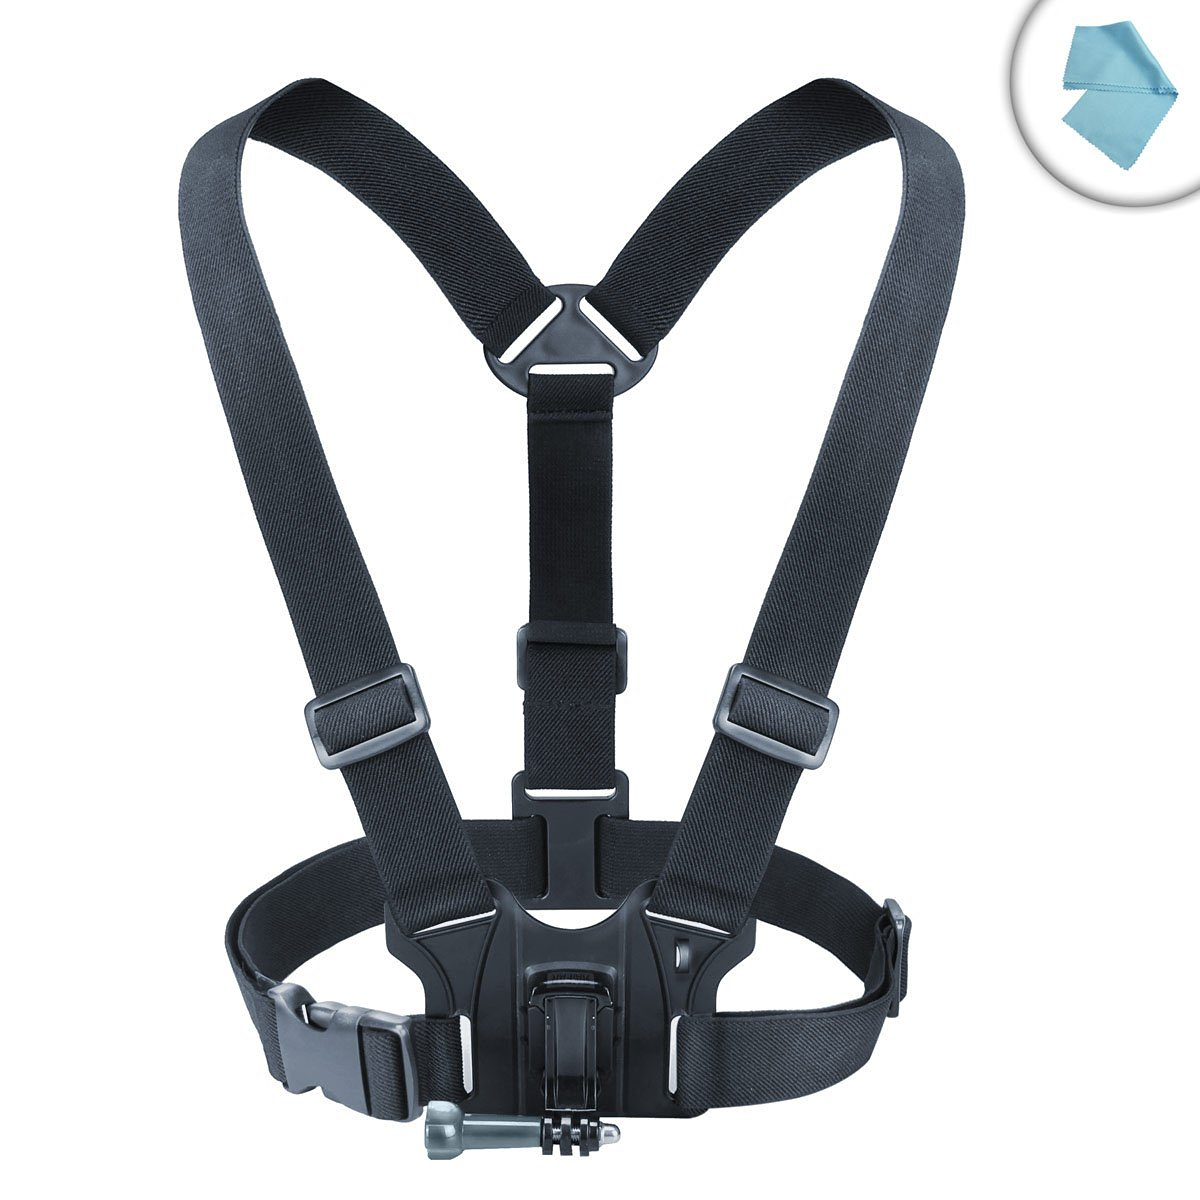 USA Gear Adjustable Chest Mount Harness with Elastic Stretch-Fit Straps - Works With Kodak PixPro SP360 4K , Ion Air Pro Lite , Xiaomi Yi 4K Action Camera and More